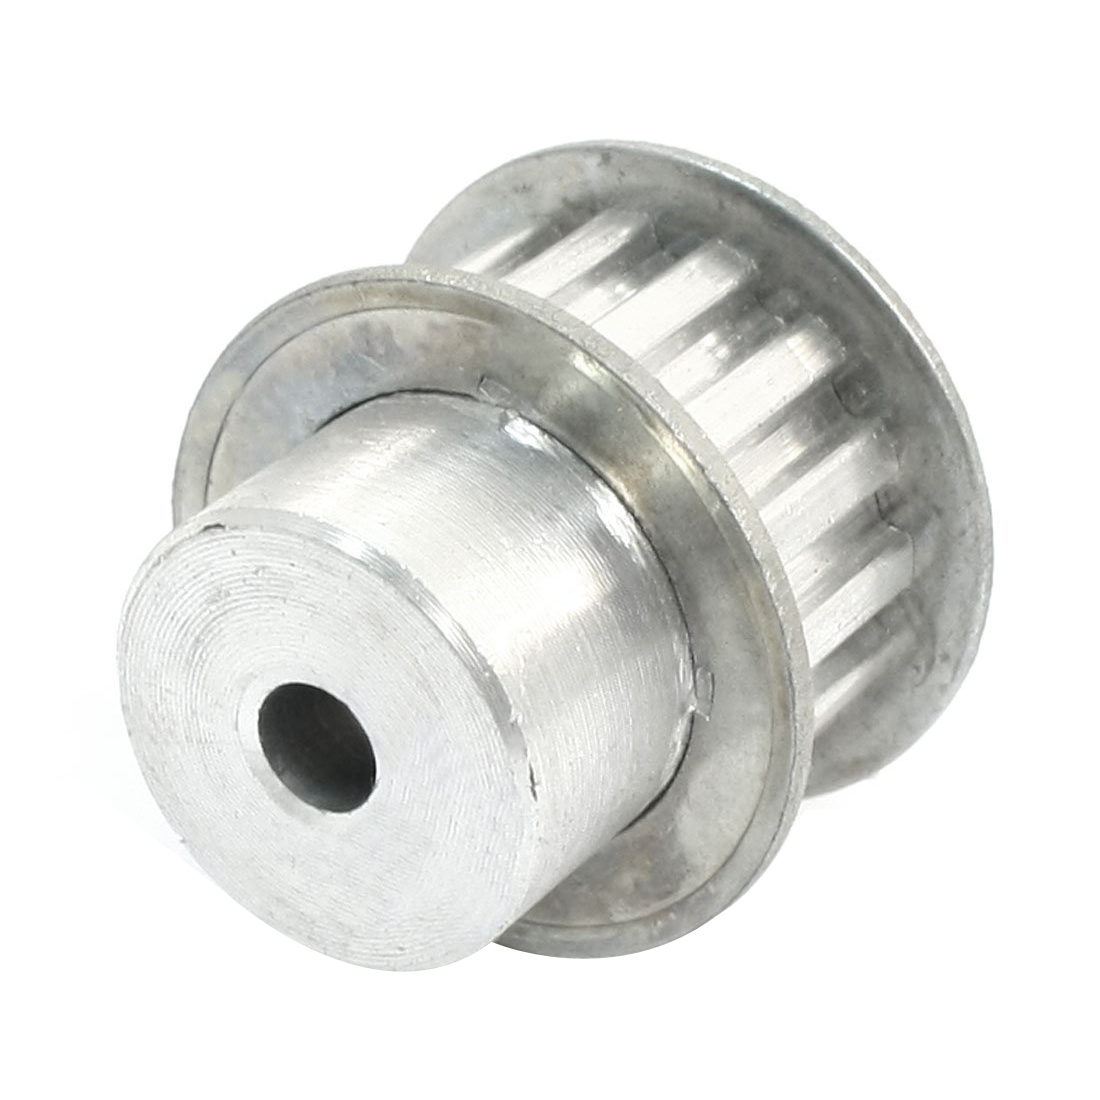 15Teeth 5mm Bore <font><b>XL</b></font> Type Aluminum Timing <font><b>Belt</b></font> <font><b>Pulley</b></font> for Stepper Motor image